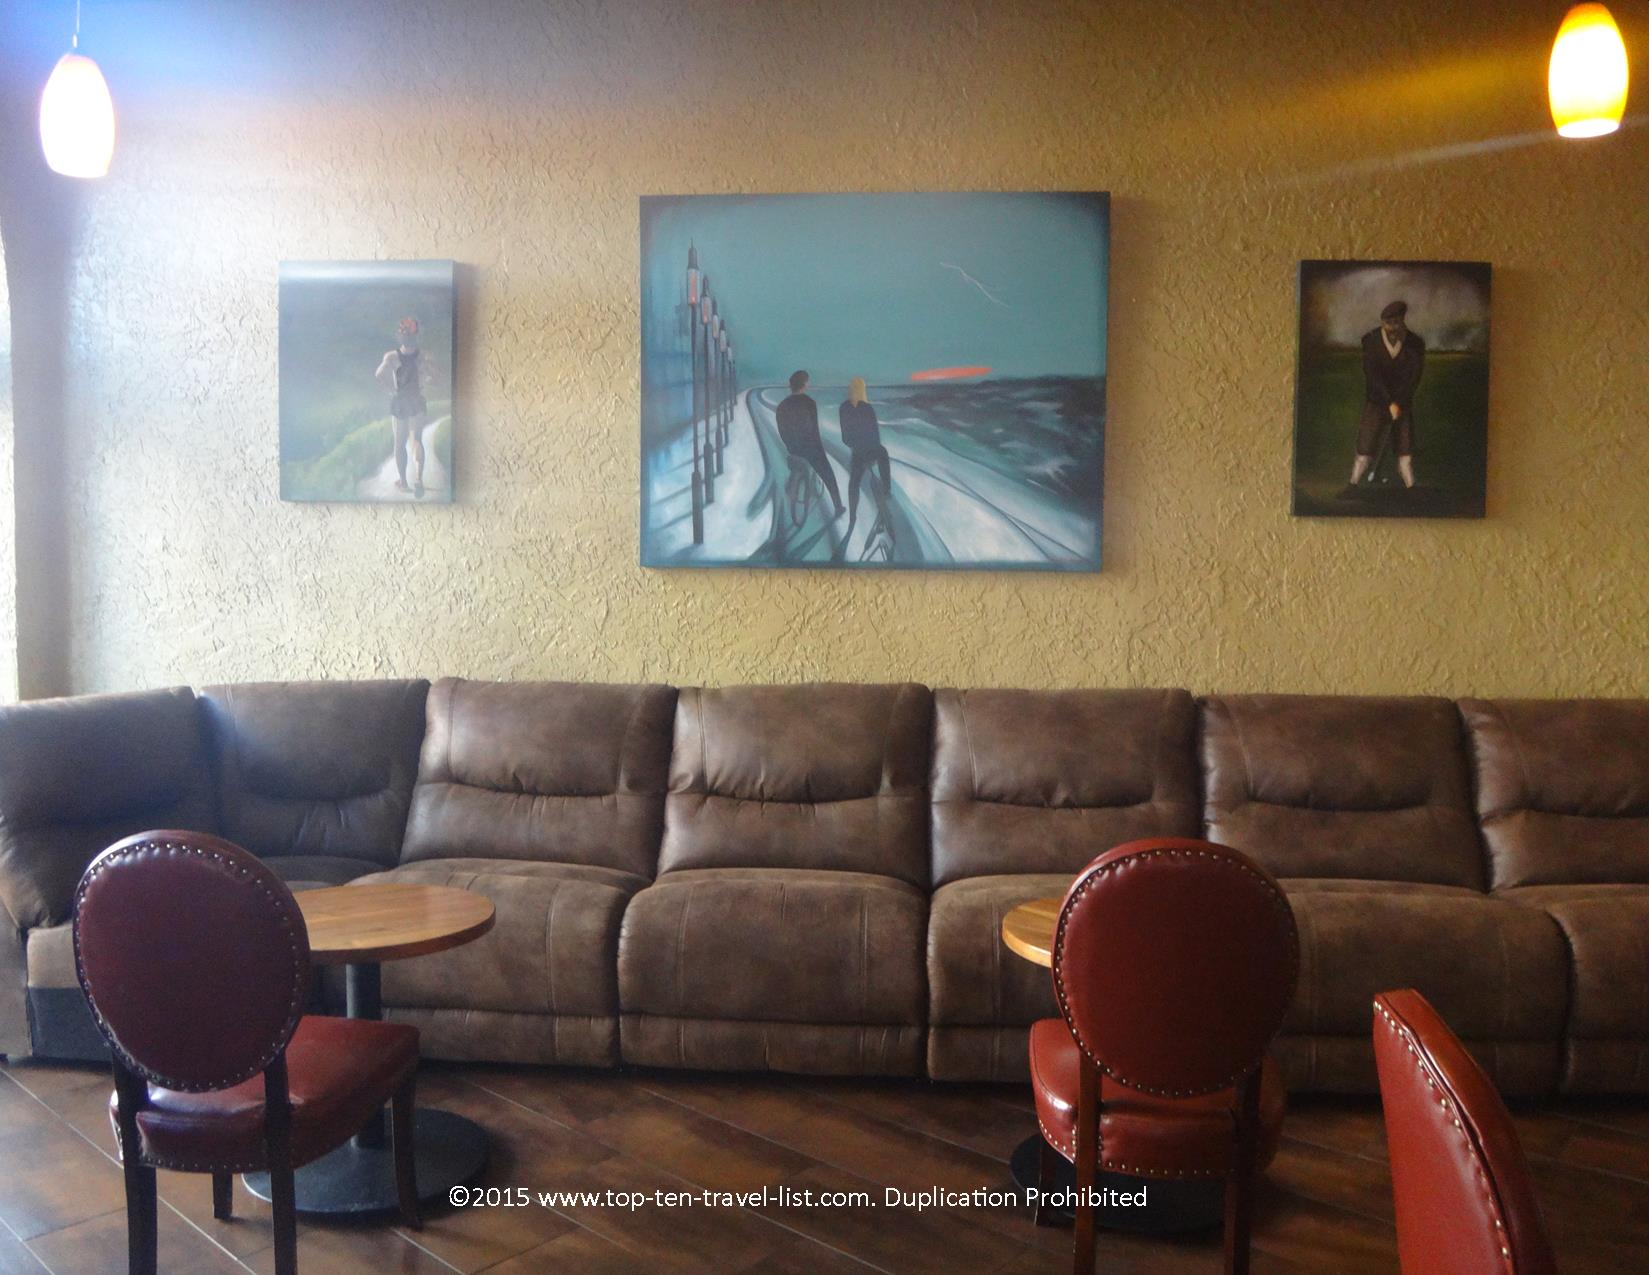 Cozy couches at the haunted Hotel Monte Vista in Flagstaff, Arizona